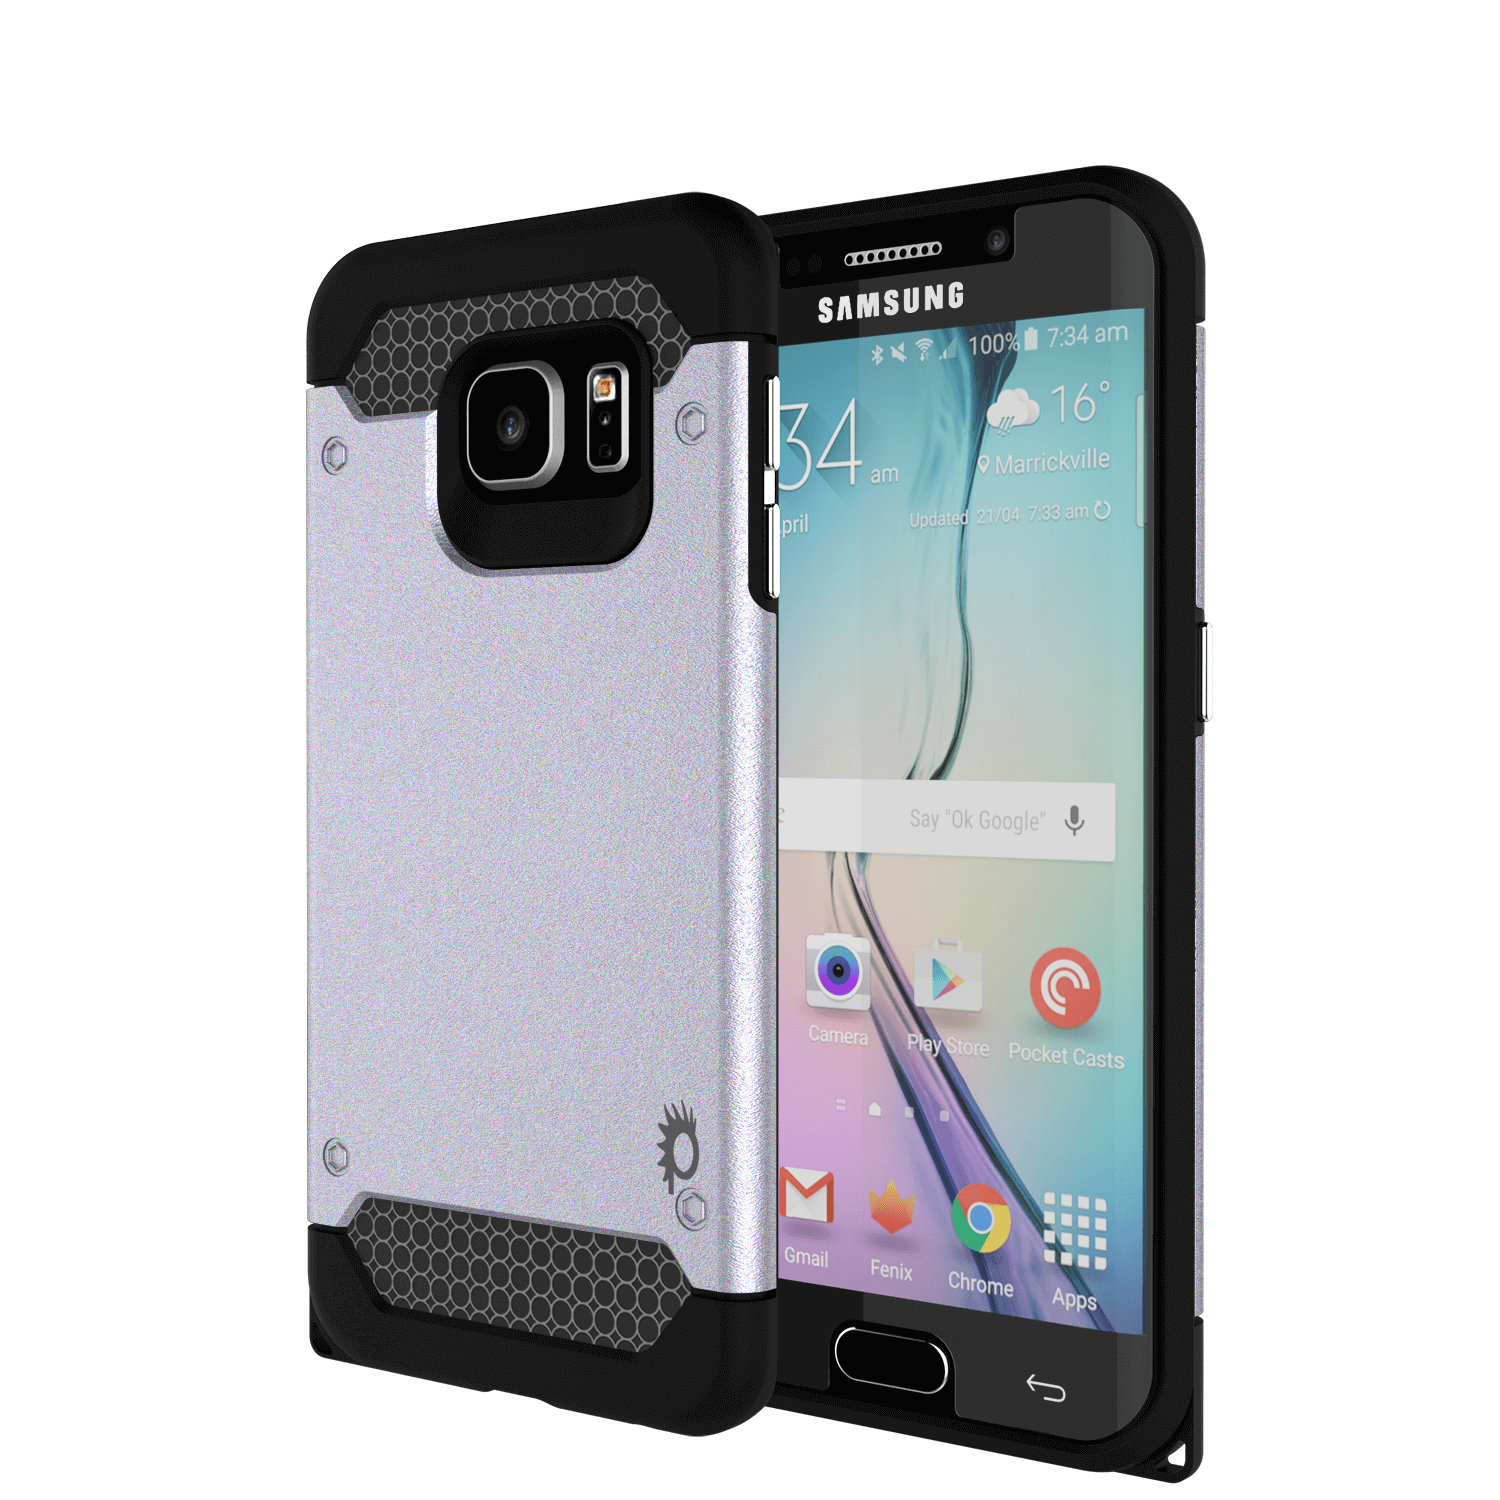 Galaxy s6 EDGE Case PunkCase Galactic SIlver Series Slim Armor Soft Cover w/ Screen Protector